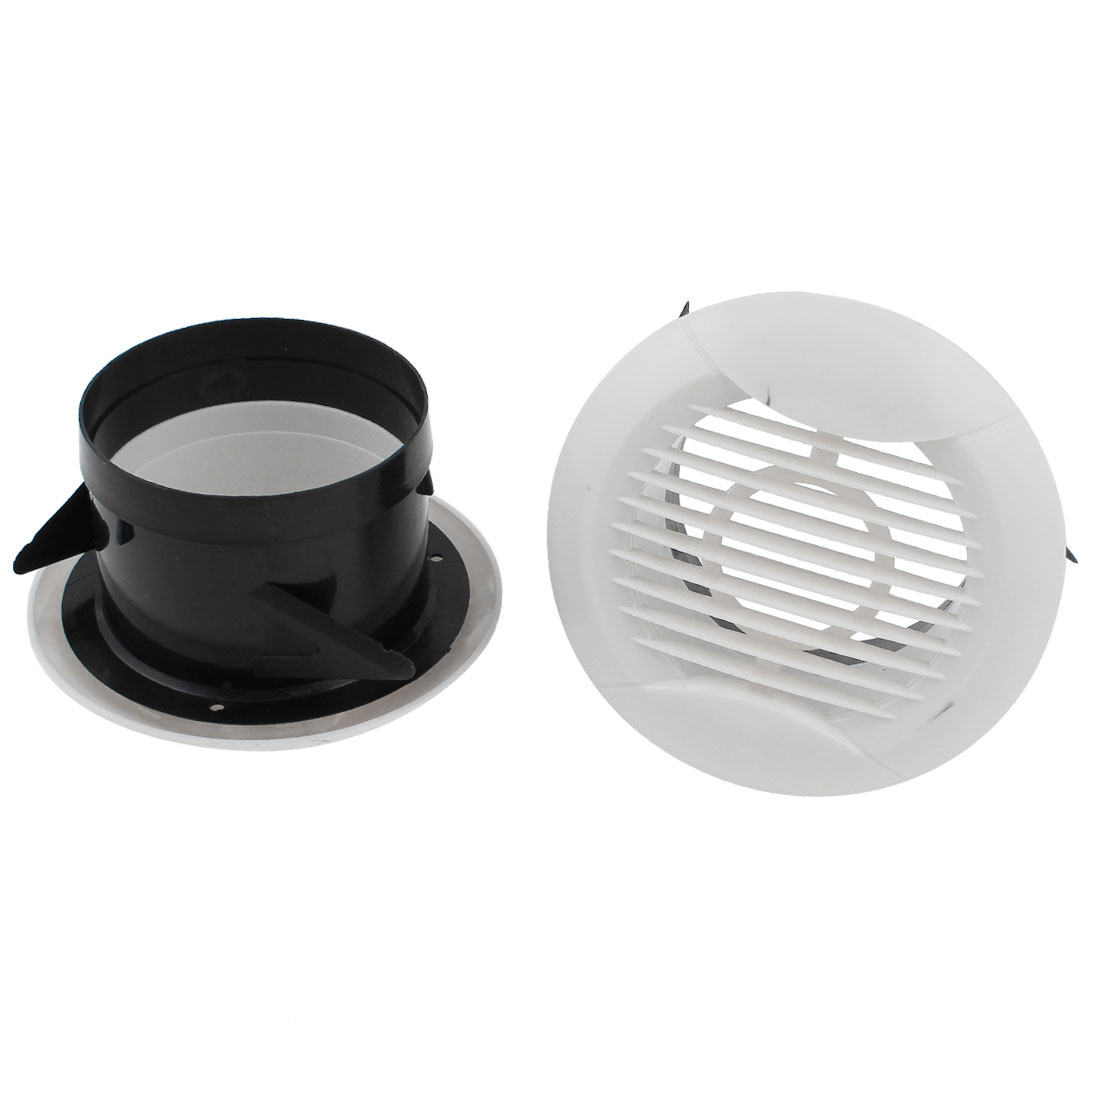 2 Pcs 75mm OD Plastic Straight Air Grilles Diffusers Vent Valve for Kitchen